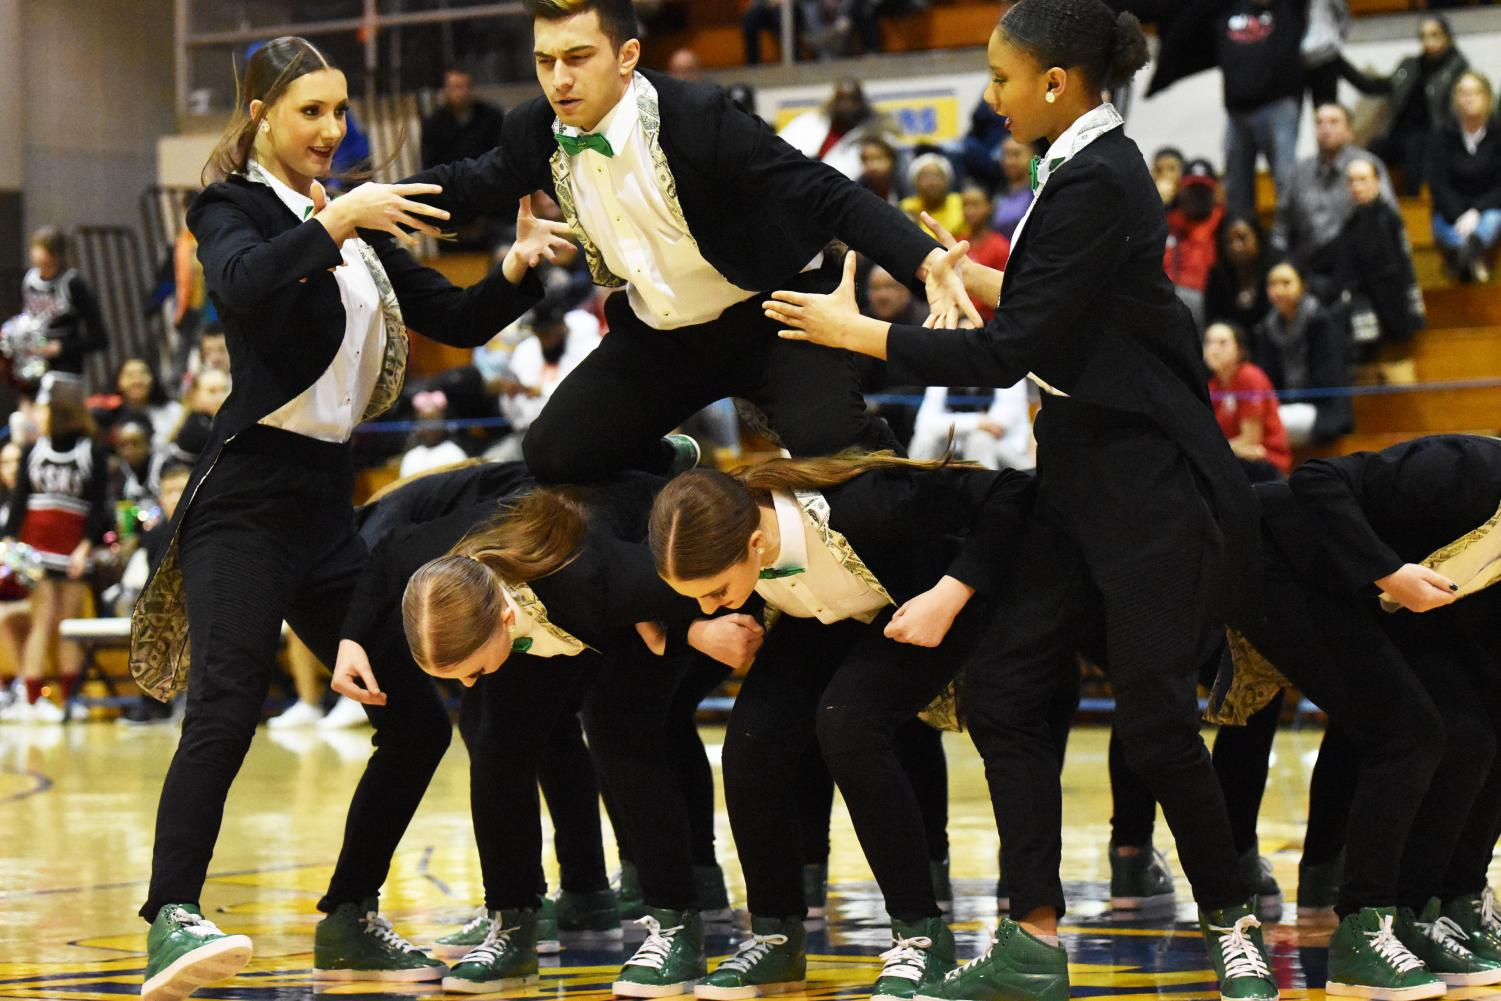 The Hip Hop team preformed a routine  at the Spring Arts Convocation on April 12.